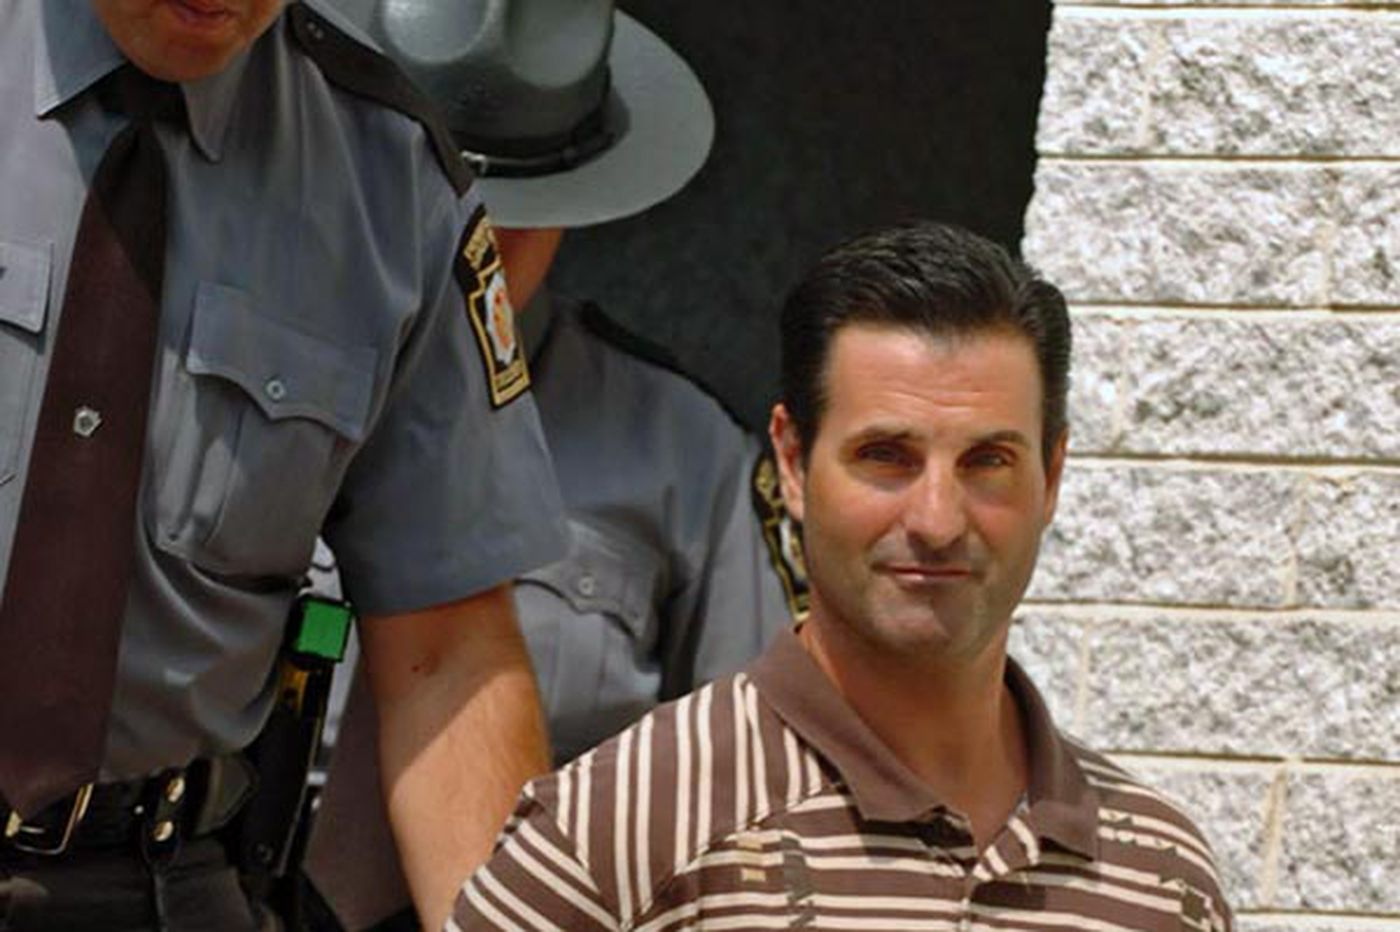 Mob informer sticks to his story in Ligambi retrial